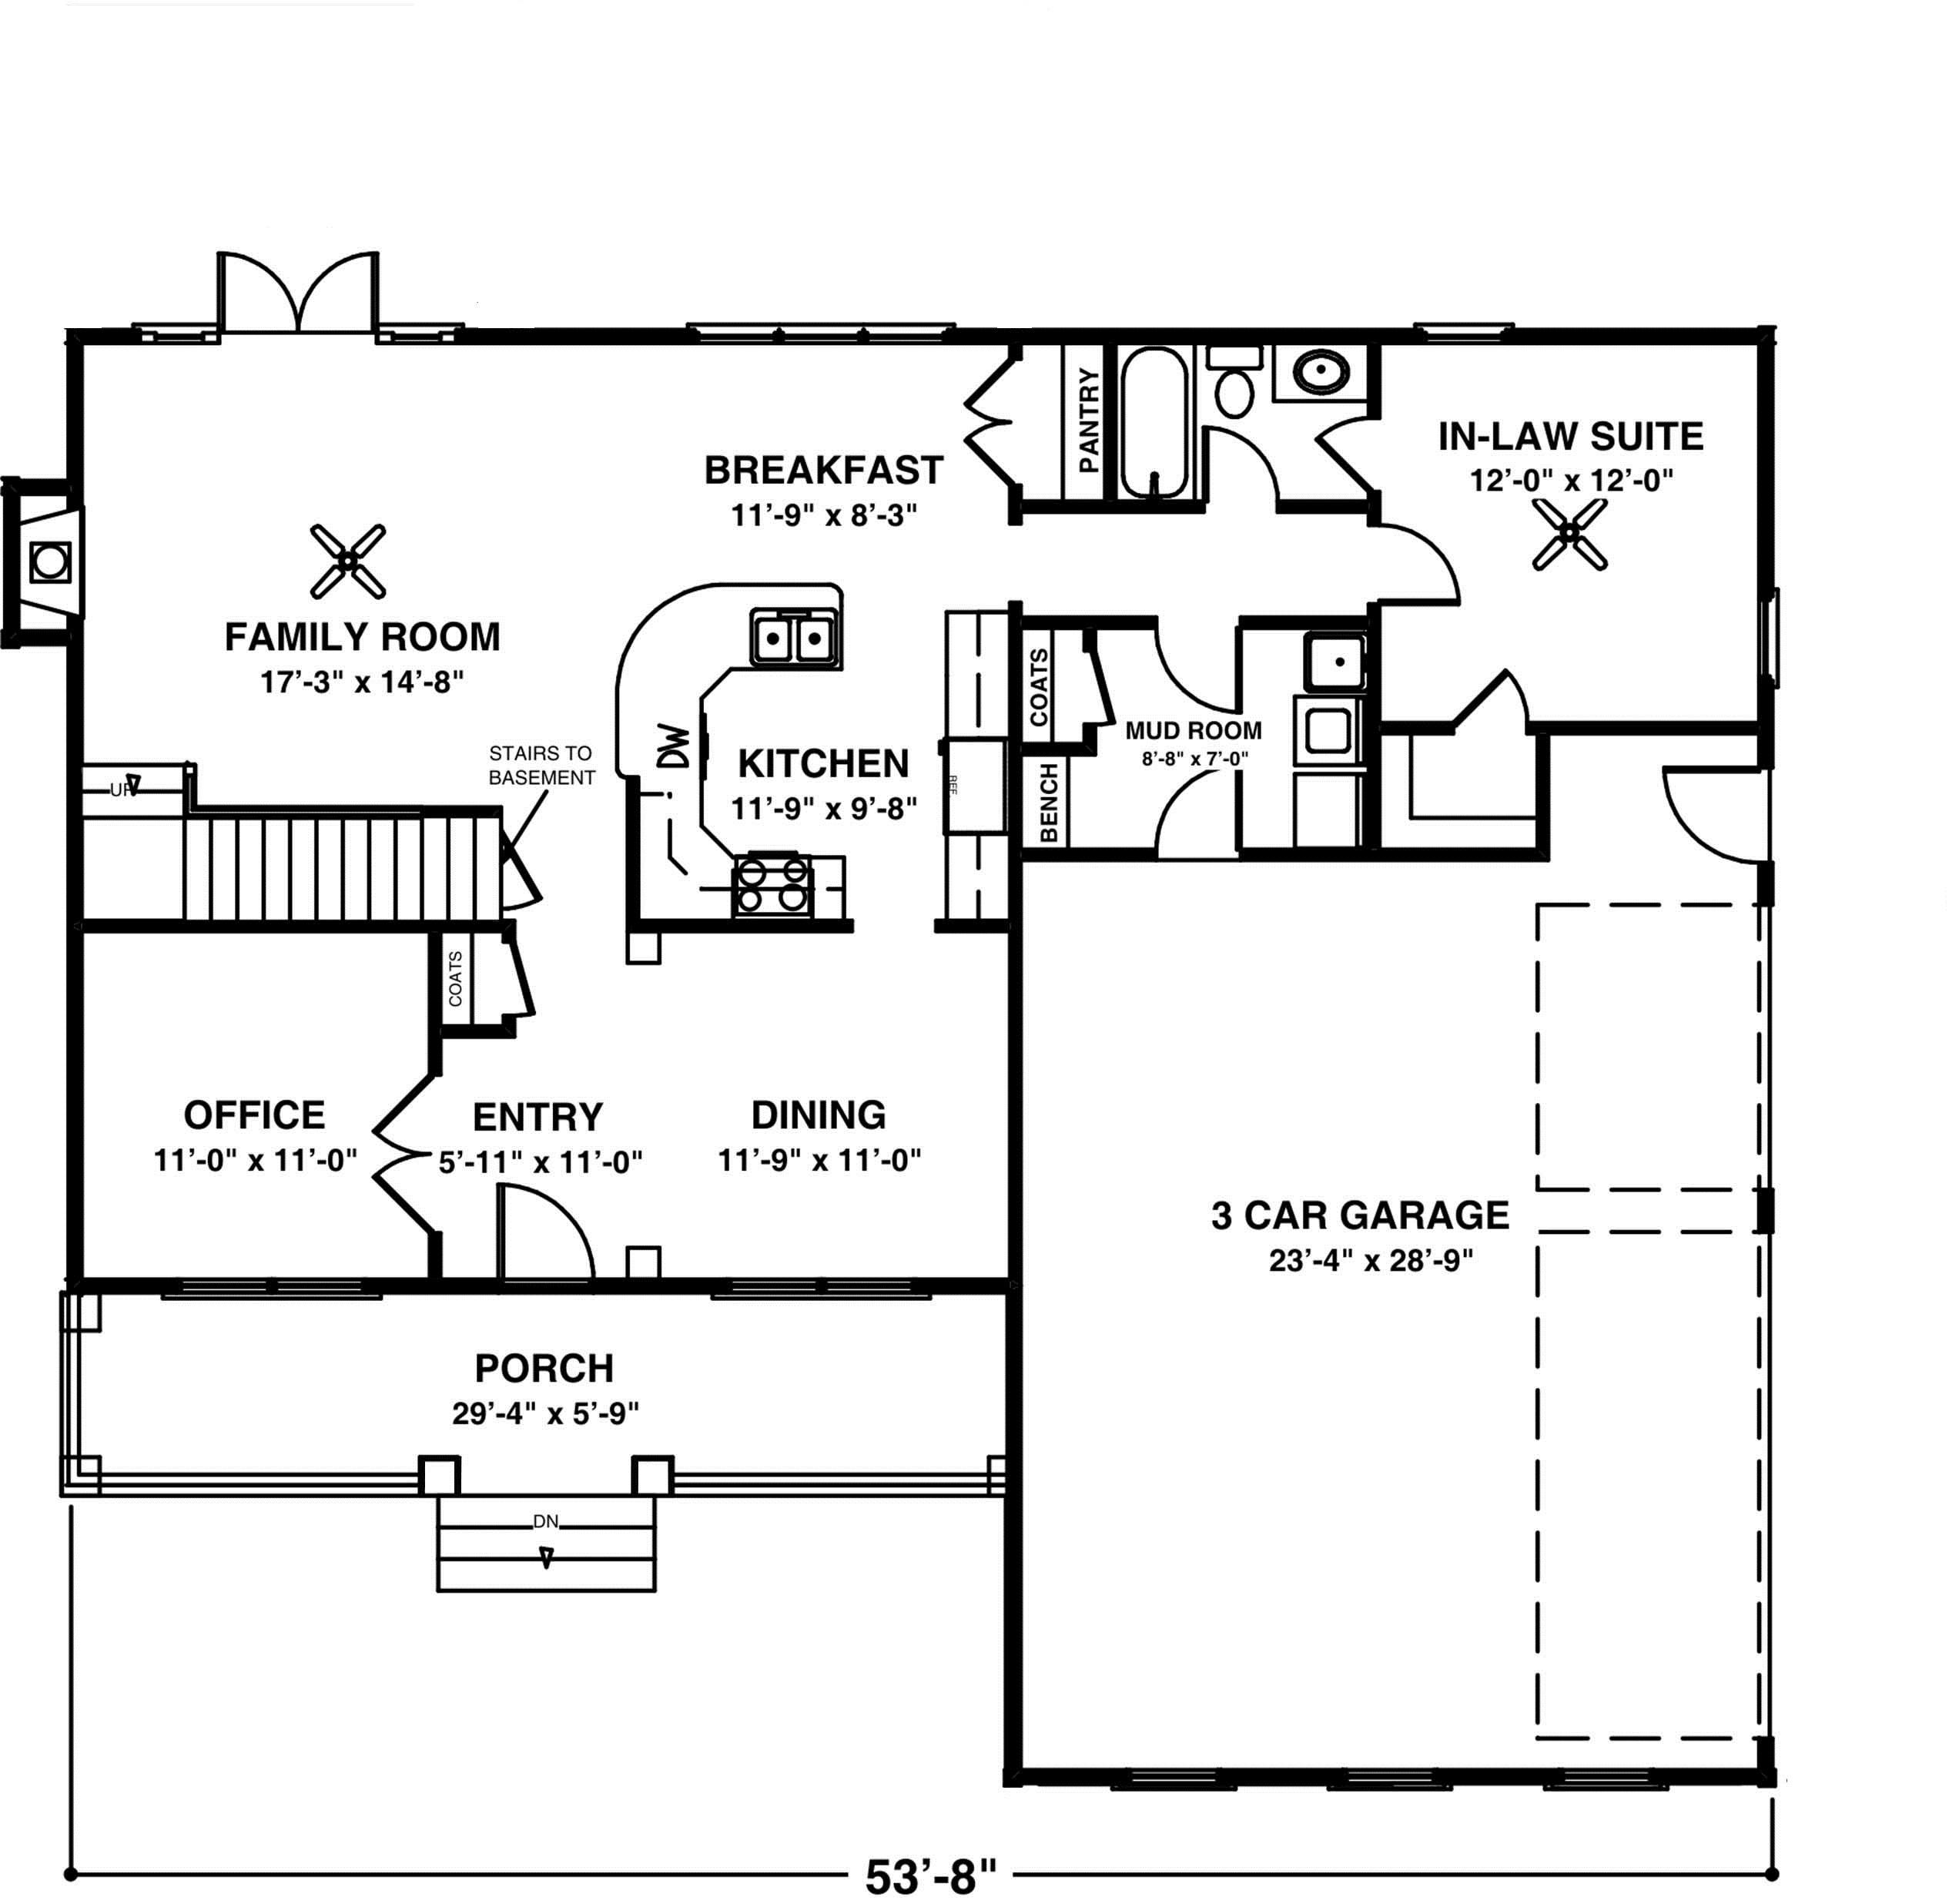 Cozy porch and in law suite first floor plan sdl custom for Mother daughter house design